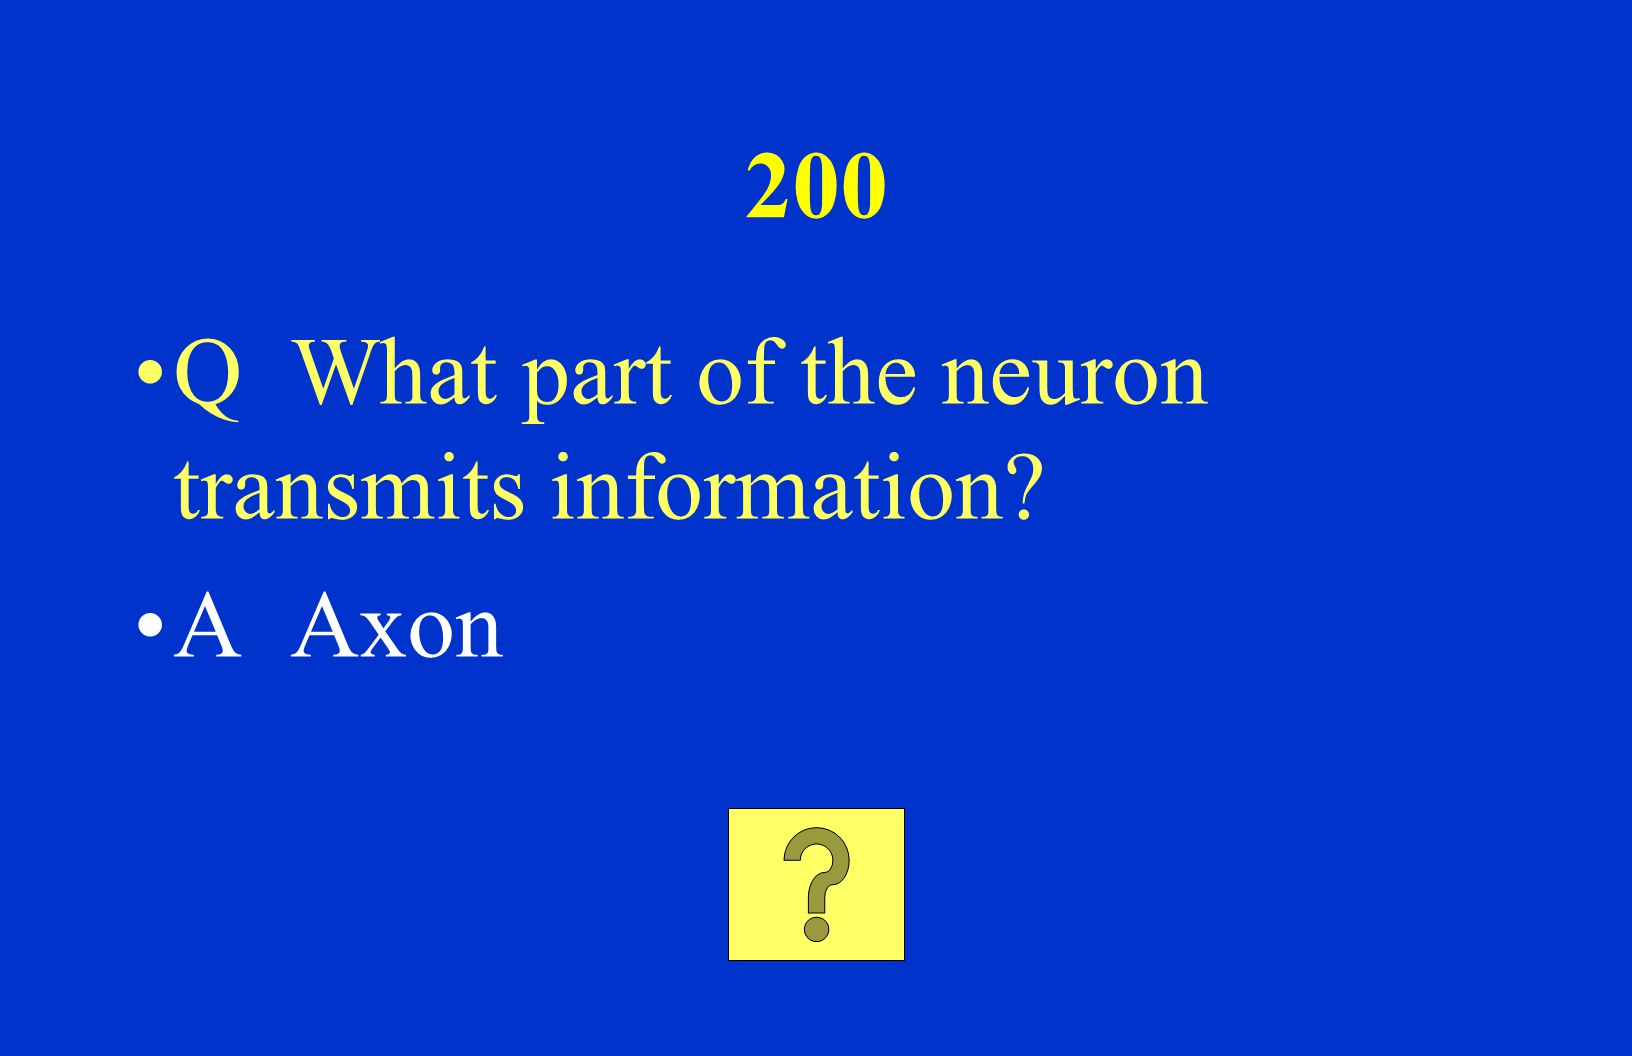 500 Q What are the three types of neurons? A Sensory neuron, interneuron, and motor neuron